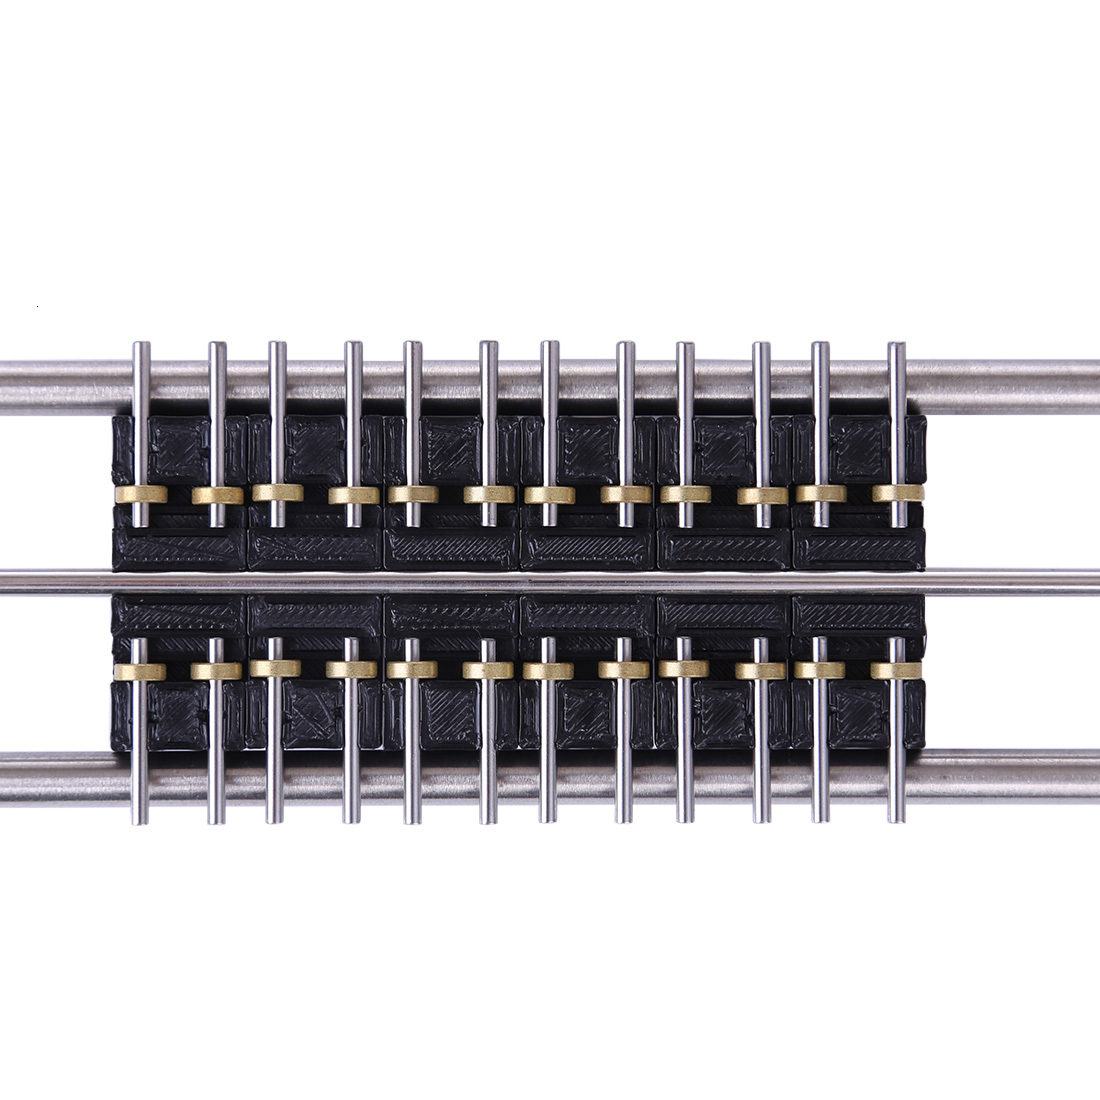 6Pcs 50cm 1:87 Model Train HO Scale DIY Treadmill Track With Connecting Line For HO Scale Model Of Most Brands In The Market